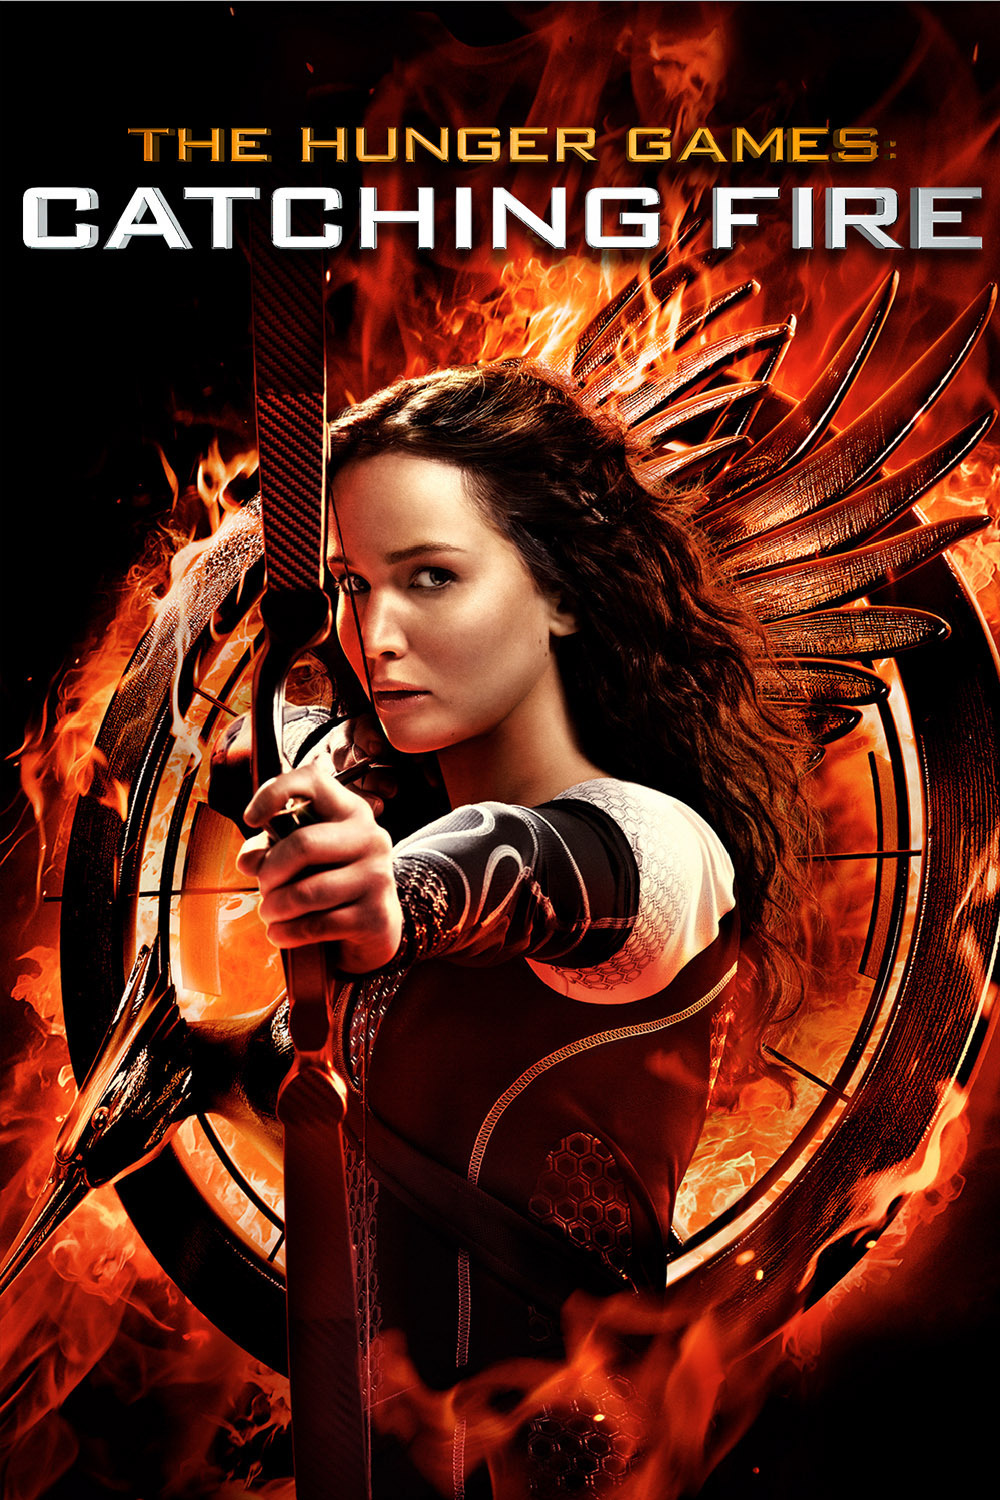 catching fire poster.jpg